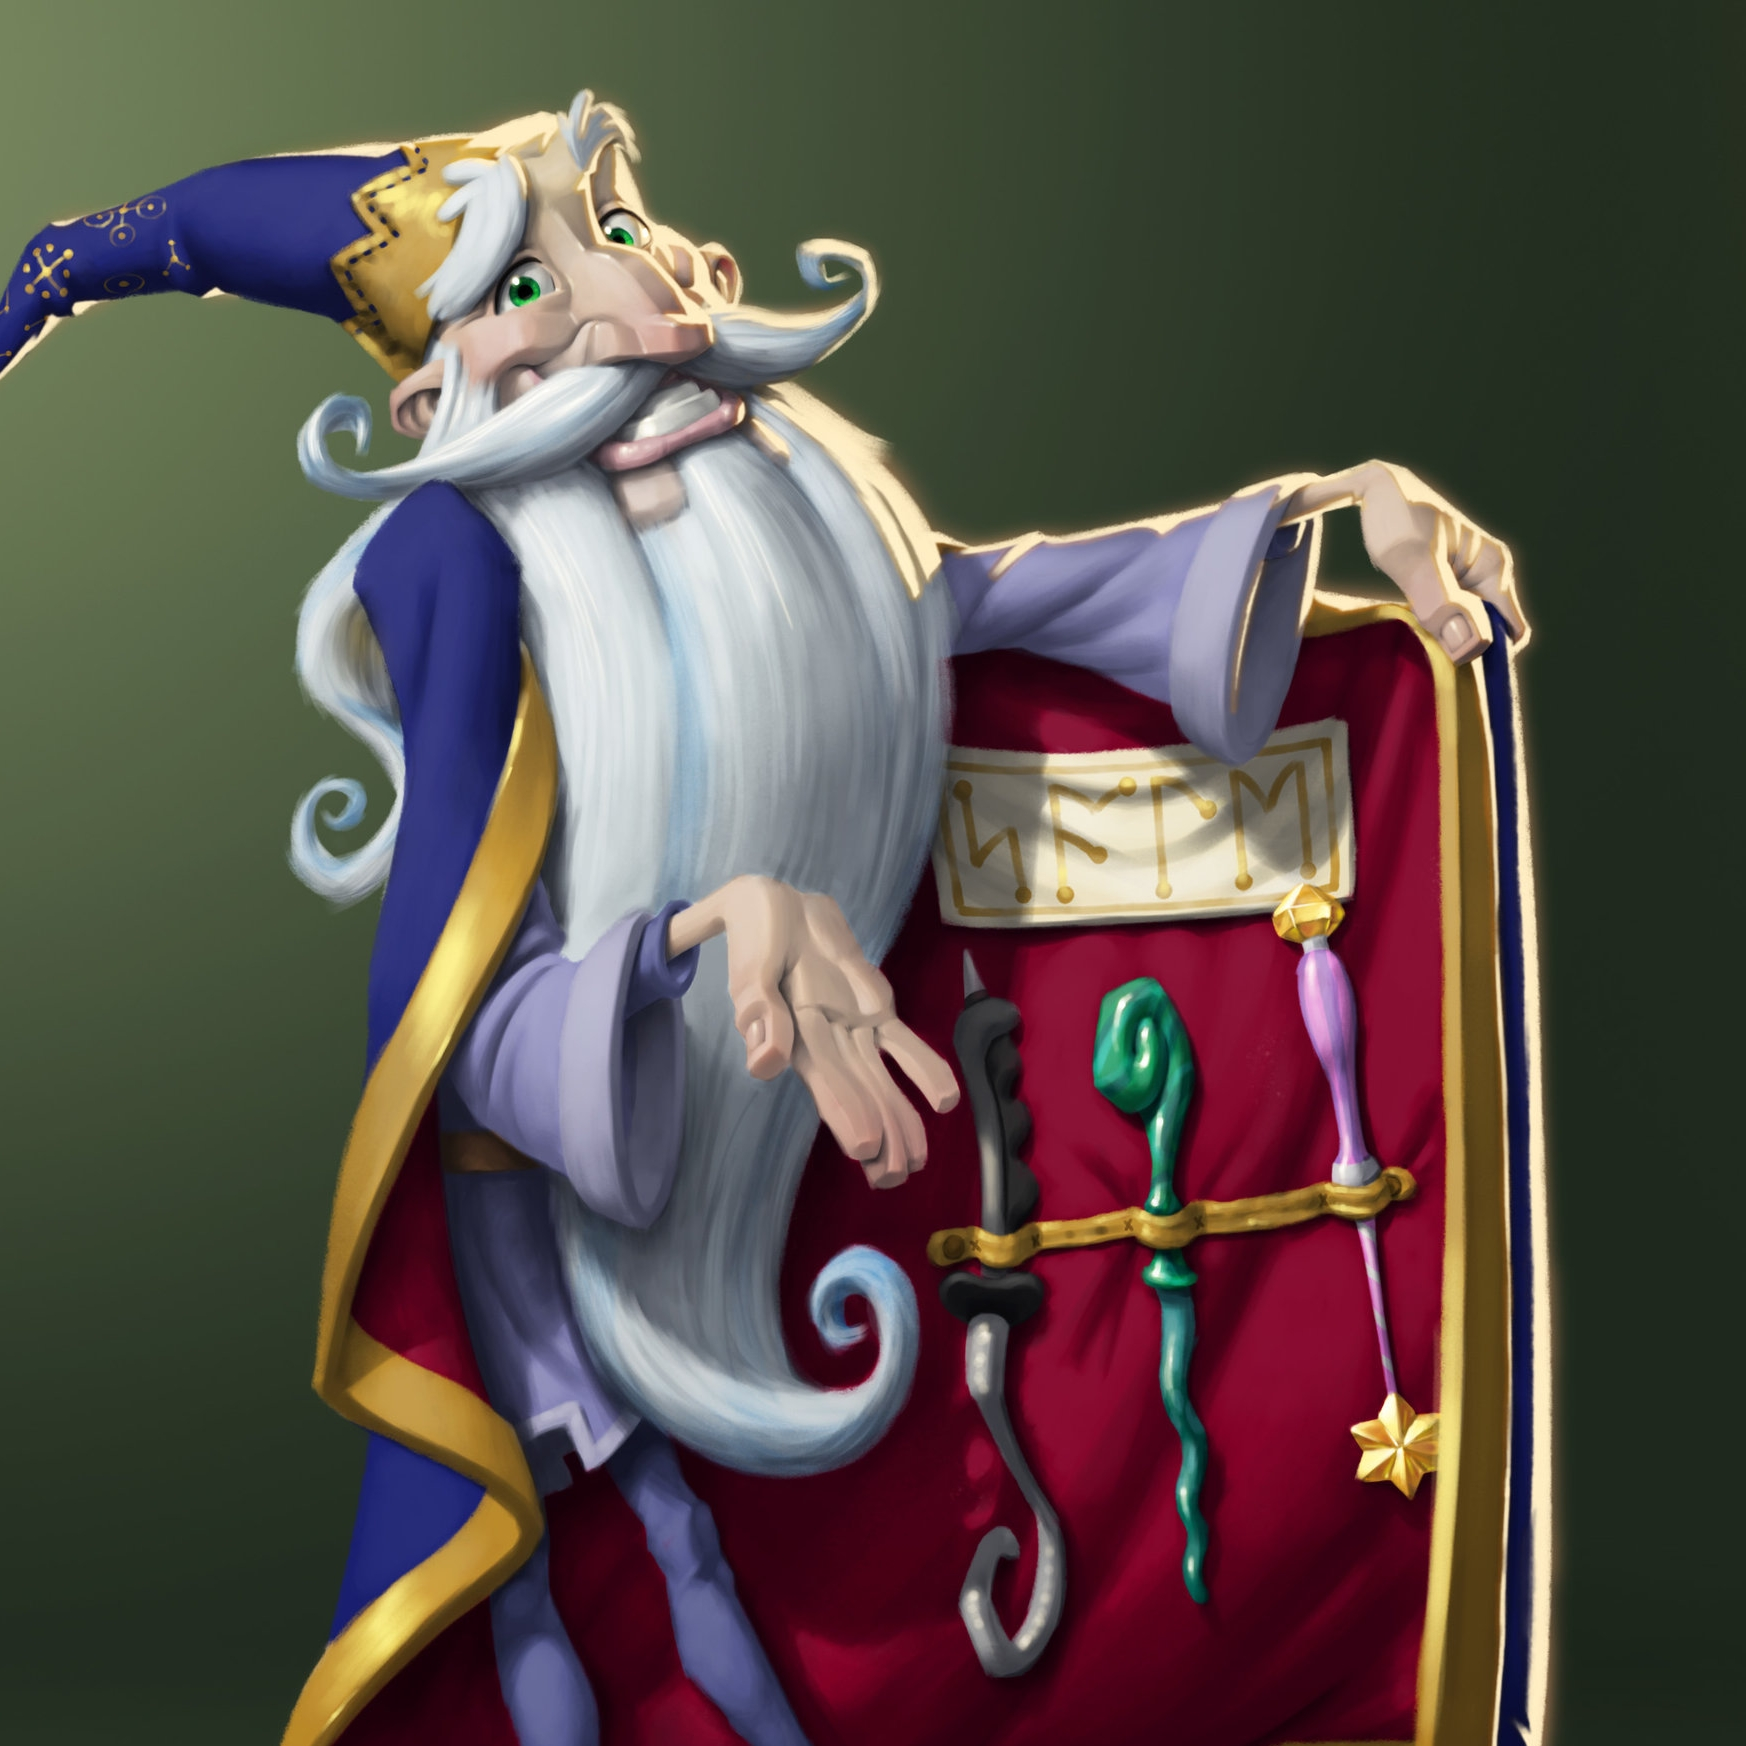 Copy of Wizard character design